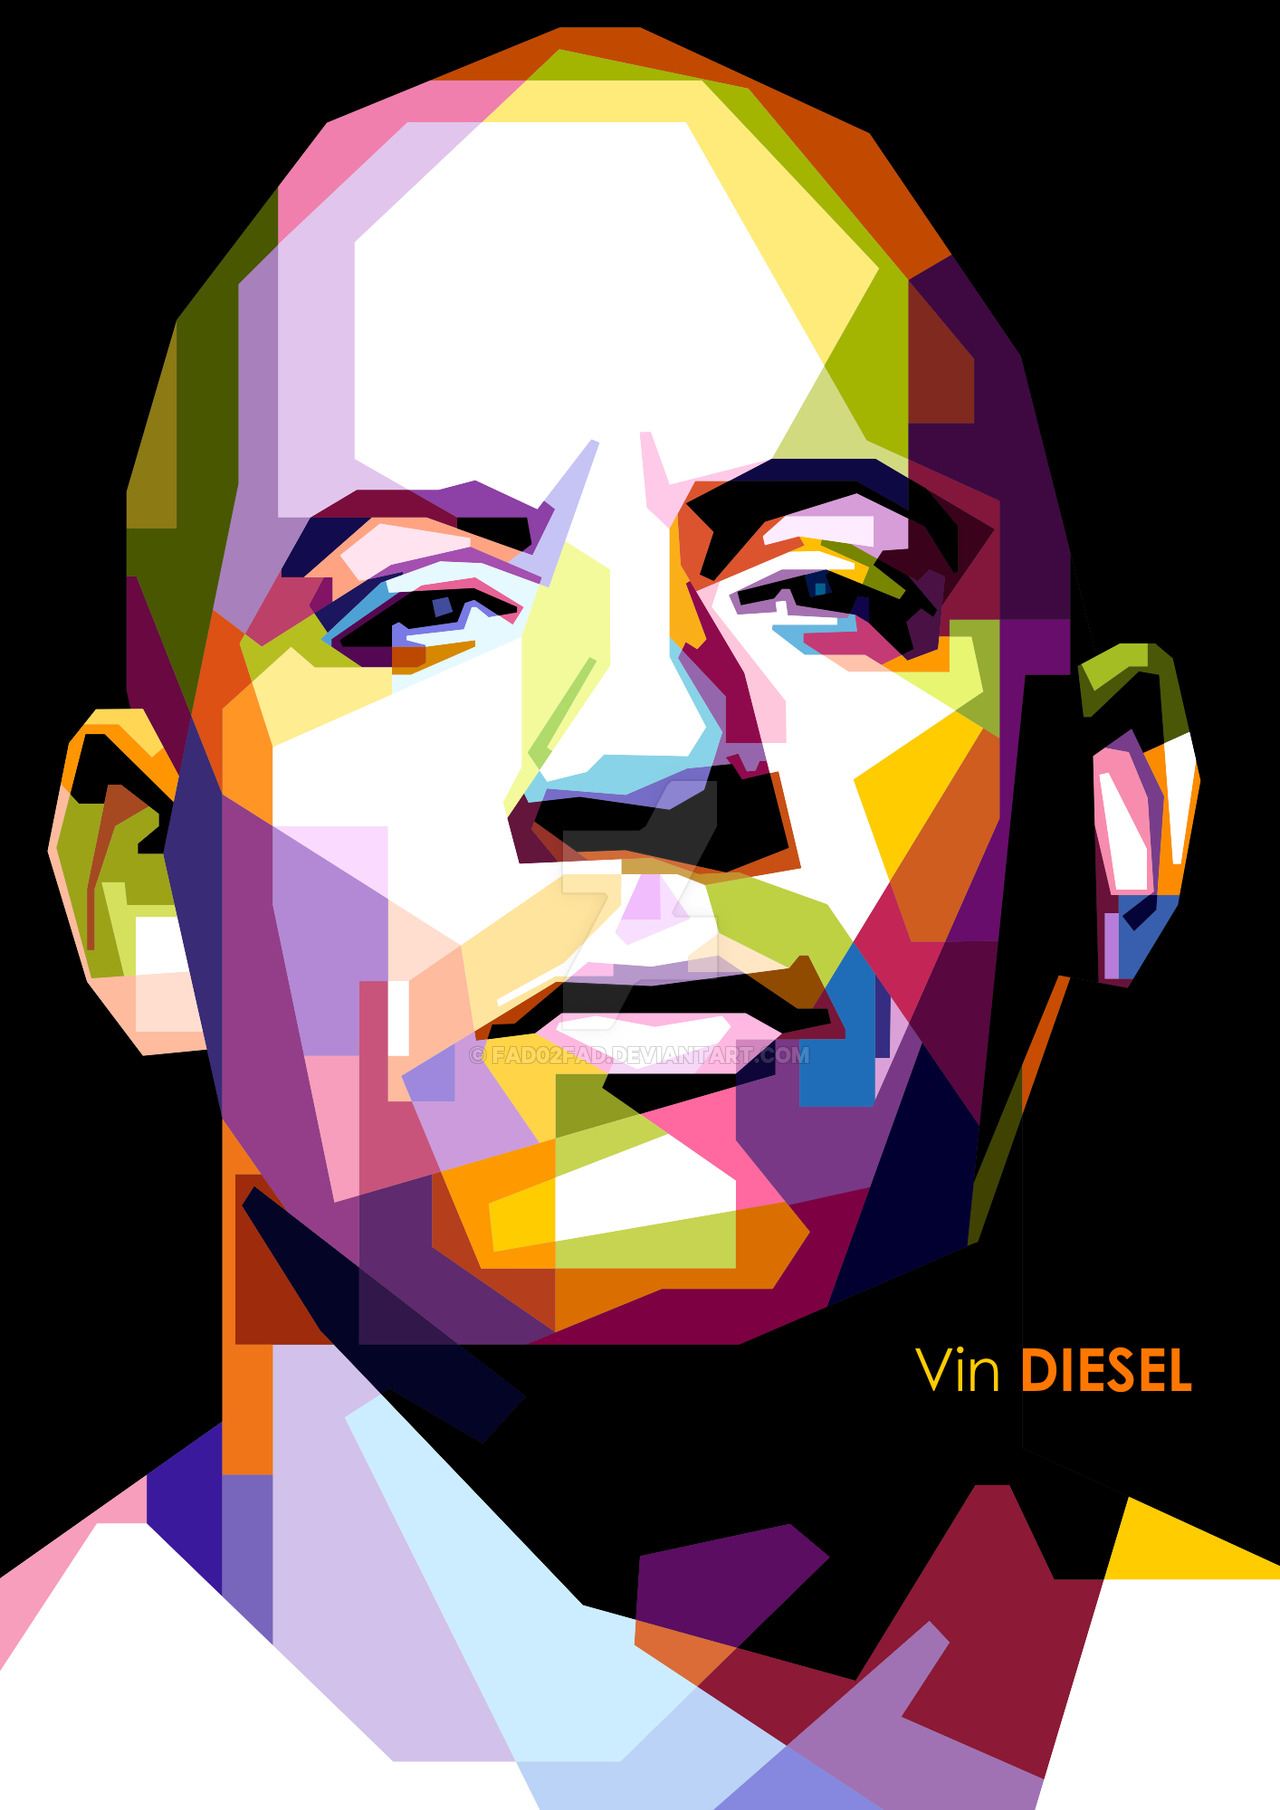 wpap art - Google Search. Polygon ArtVin DieselArt hdclipartall.com